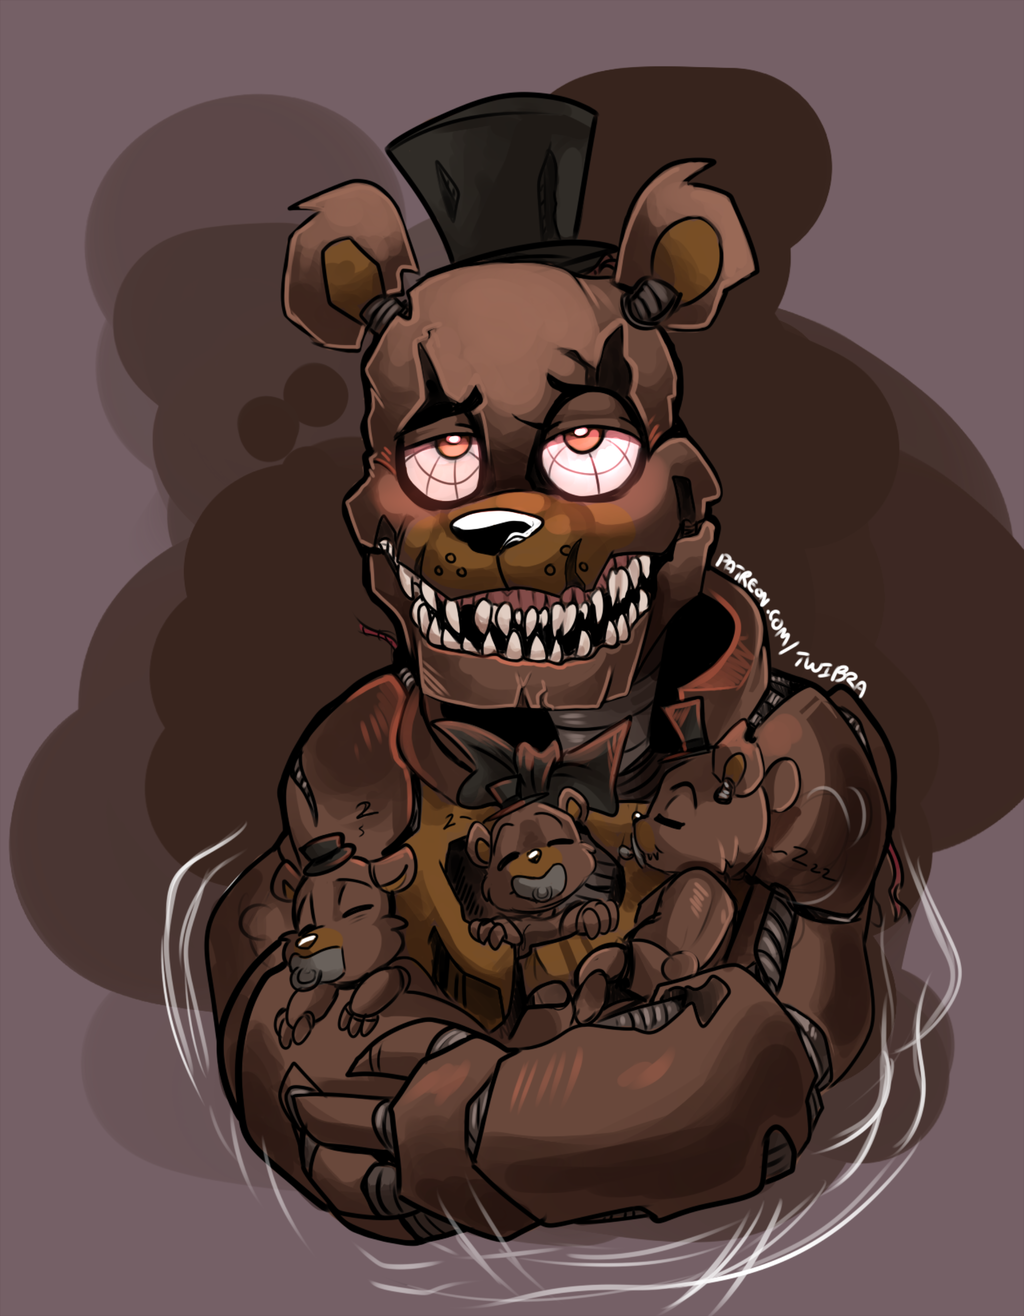 FNAF - Single Dads: Nightmare Freddy